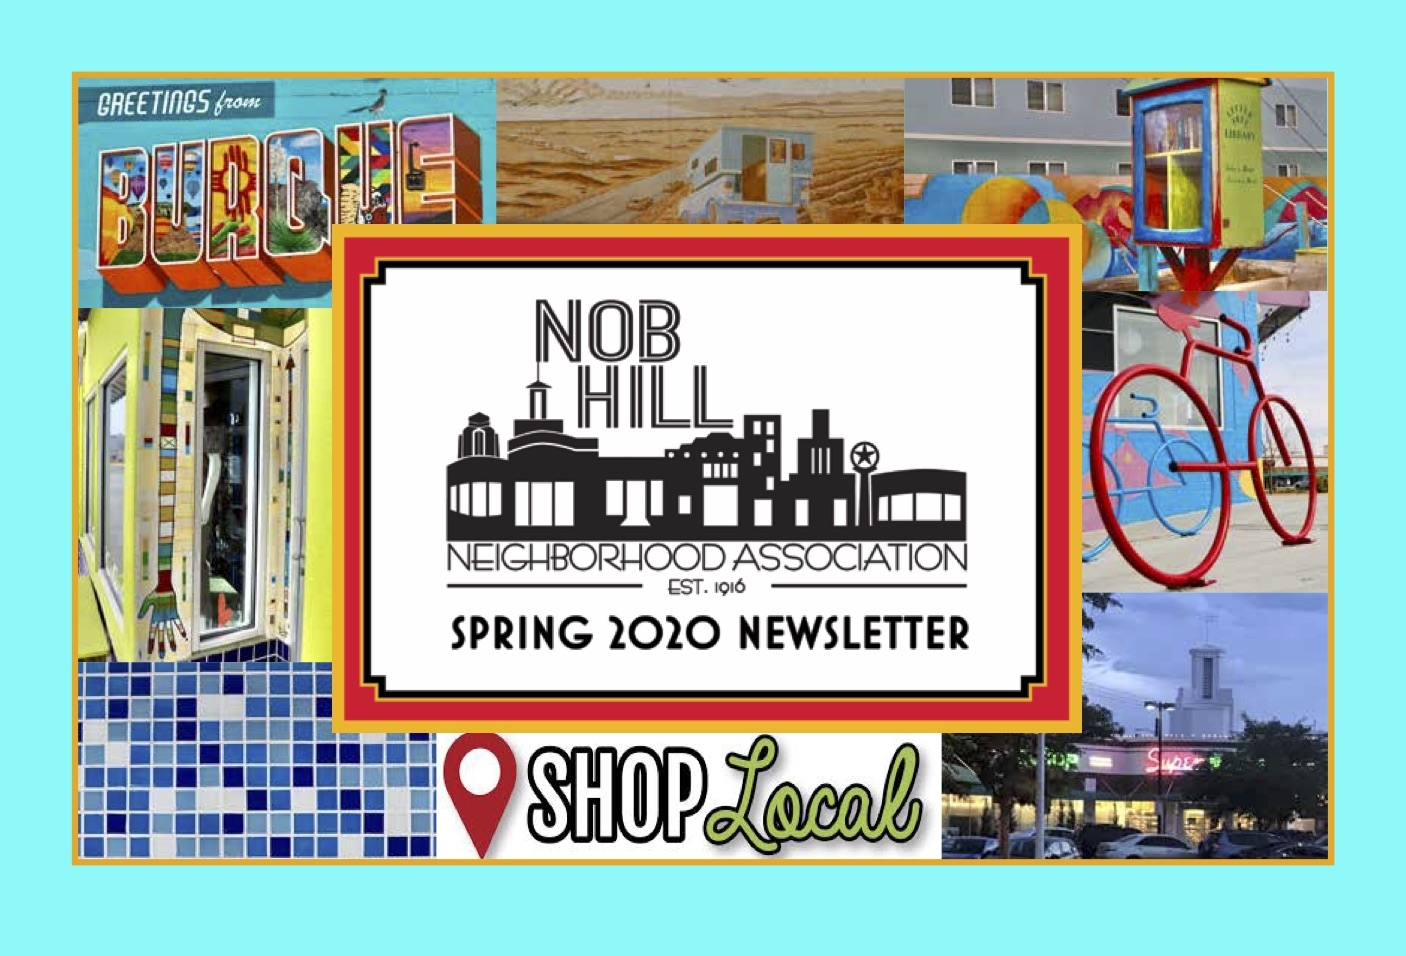 Nob Hill Neighborhood Newsletter Spring '20